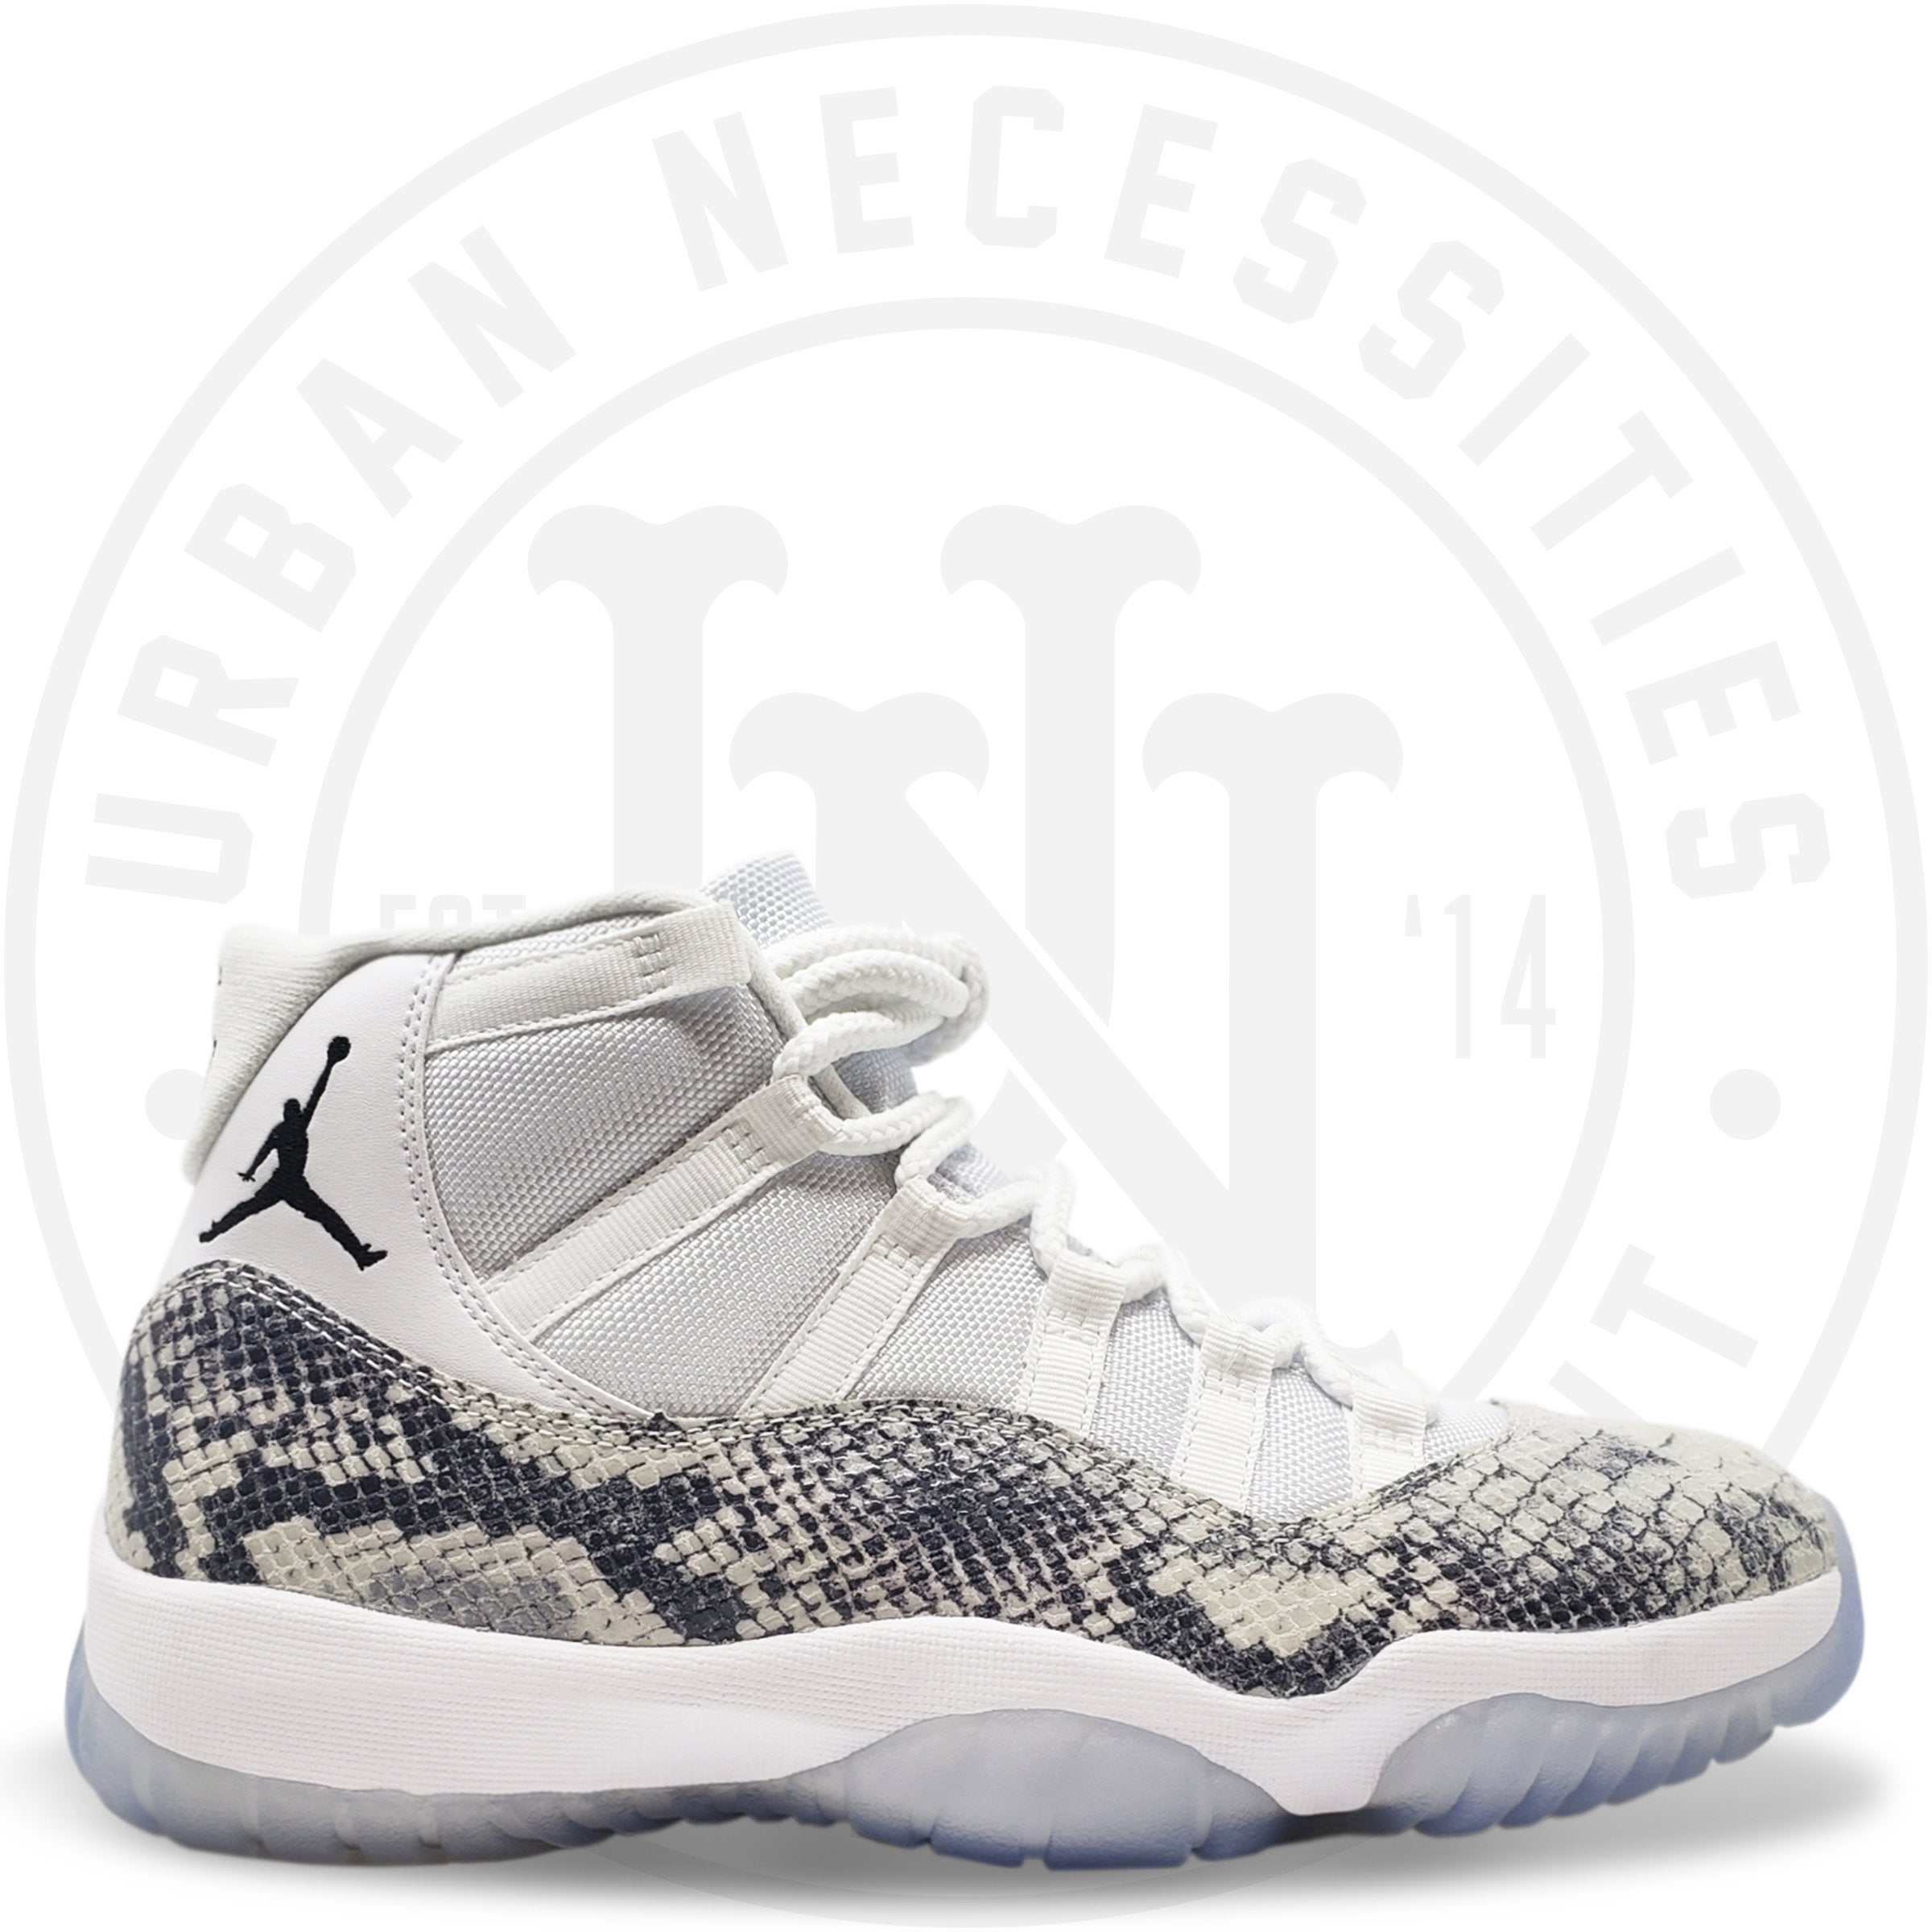 huge selection of 28889 768c6 Air Jordan 11 Retro 'White Snakeskin' White/White Ice HO16-MNJDLS-281 78432S